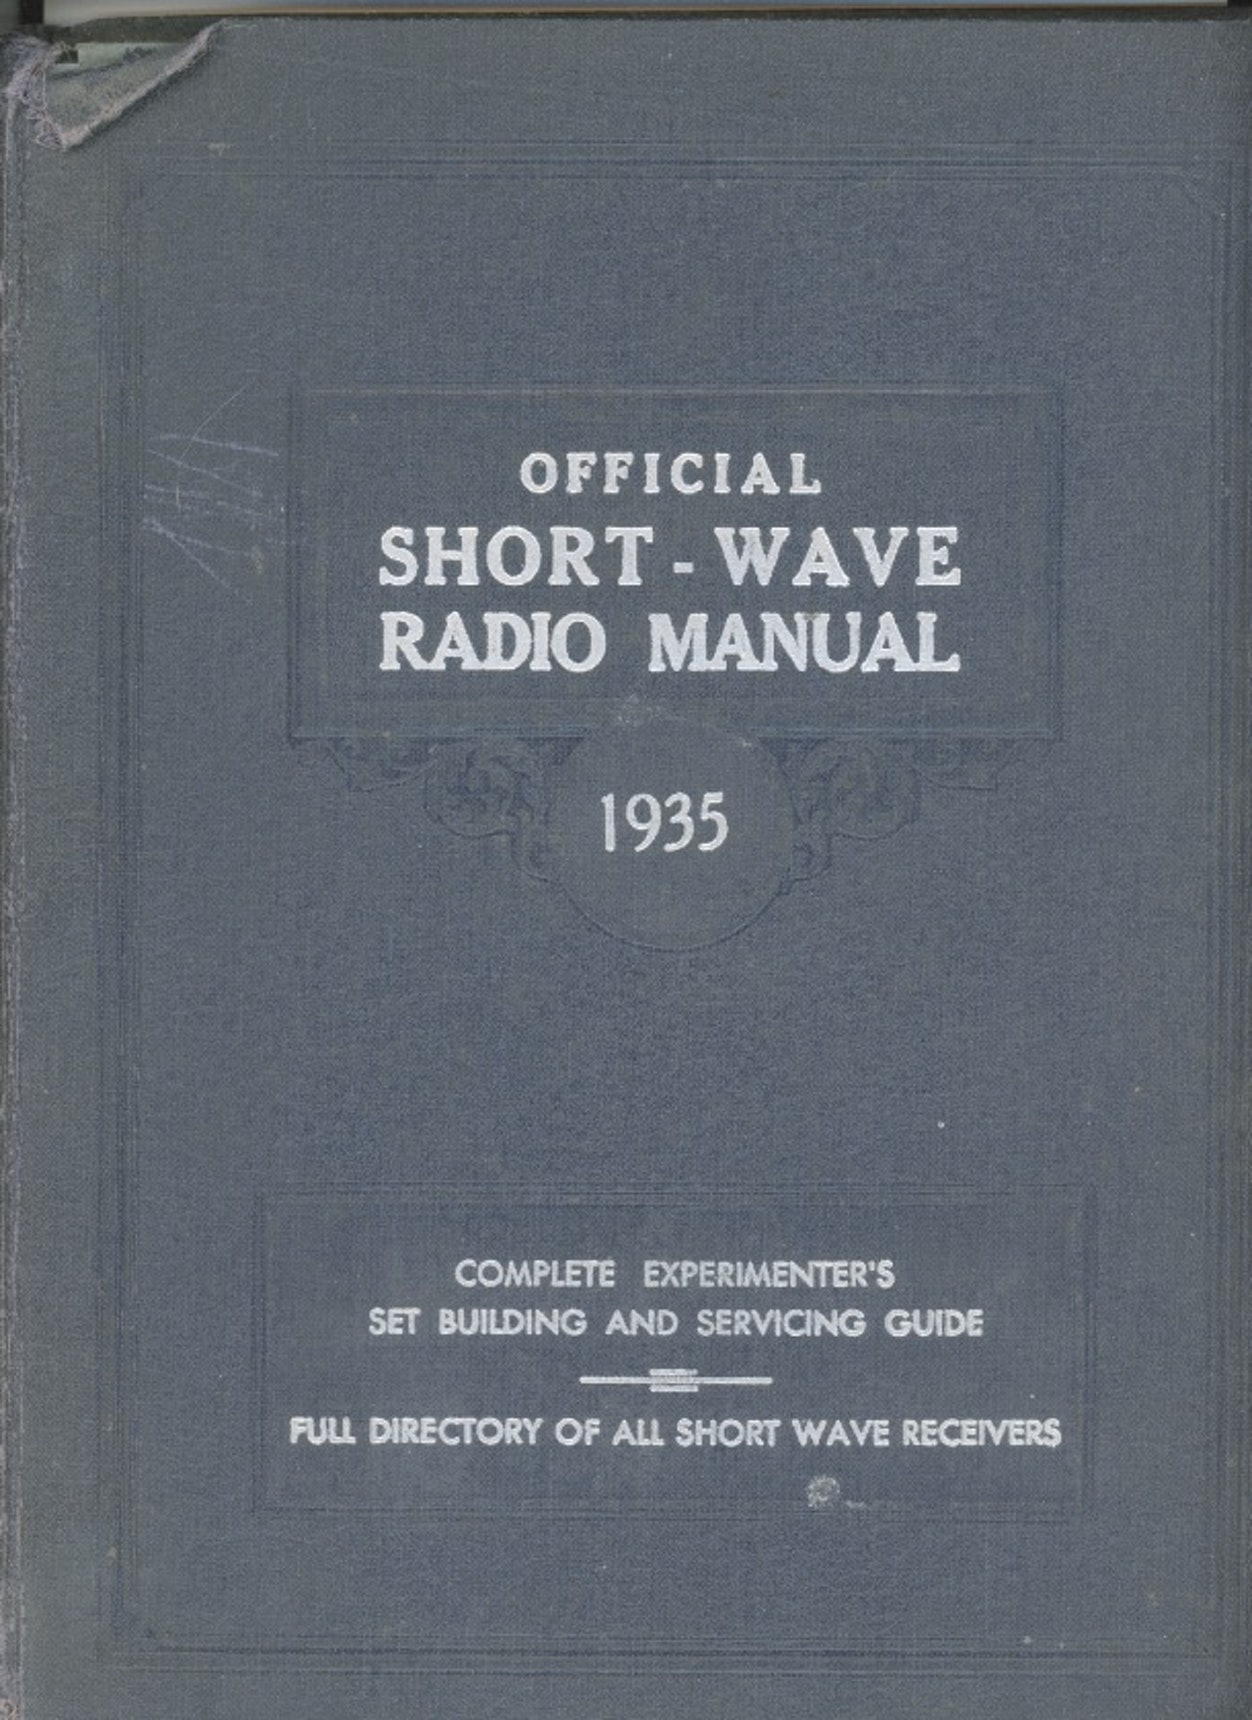 Official Short-Wave Radio Manual 1935